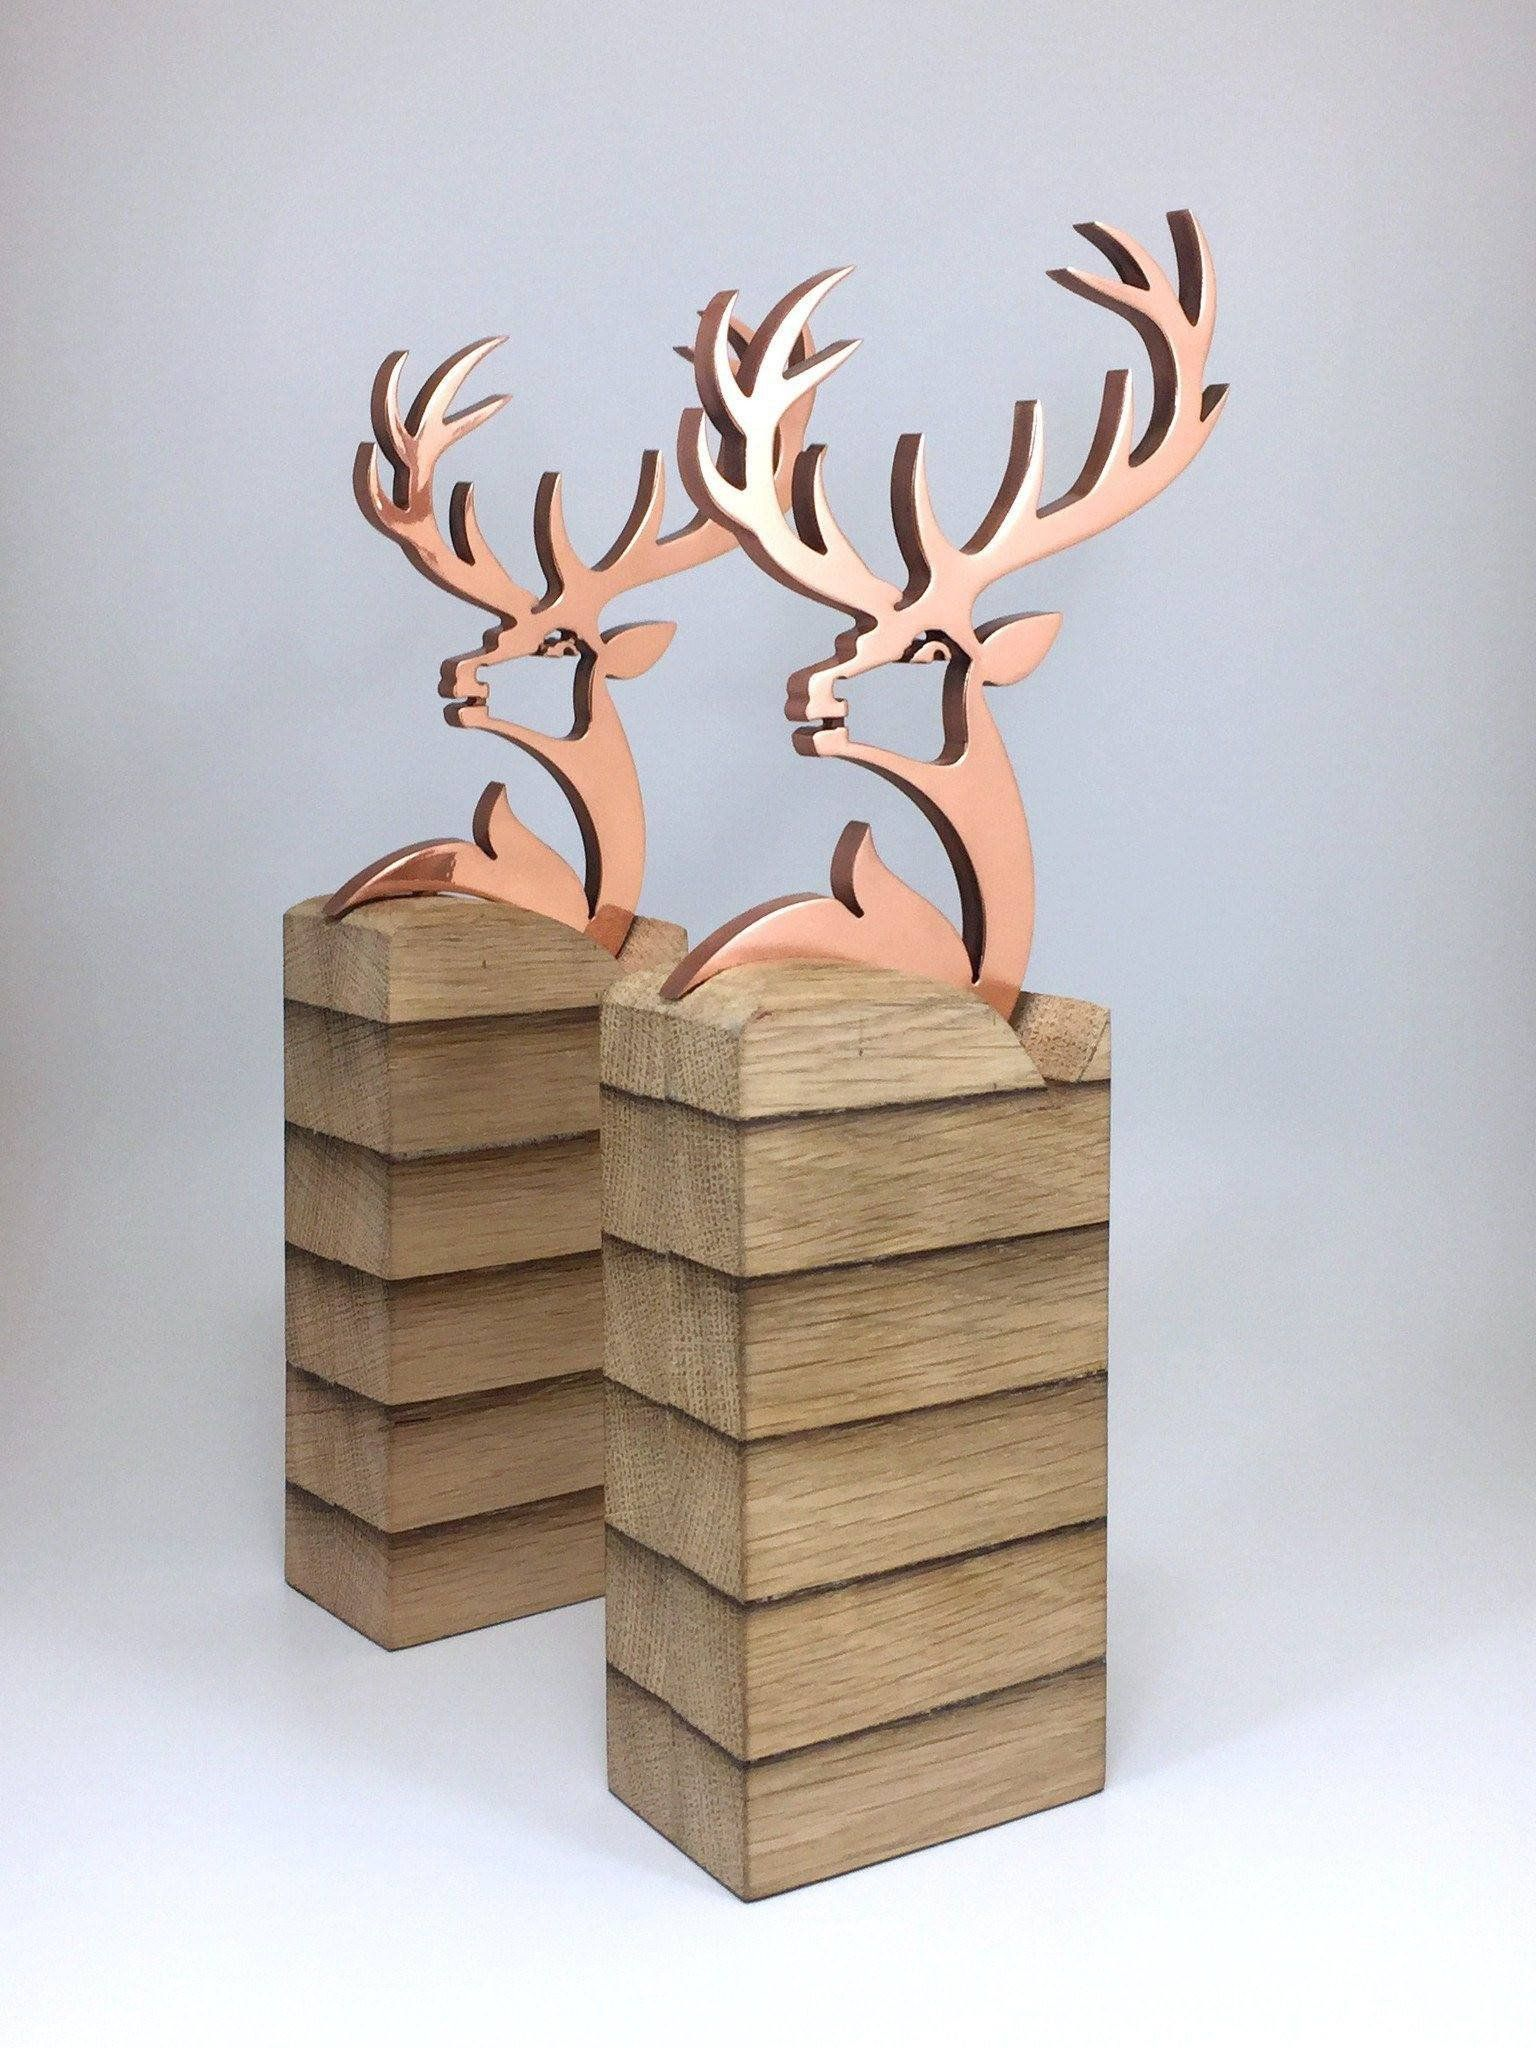 It's freezing out there! Warm up with our copper stag award commissioned for a famous Scottish Whiskey company. View more of this bespoke award via link in image. #whiskey #scotland #handmade #copper #awards #award #design #handmade #trophy #branding #bespokedesign #custommade #bespoke